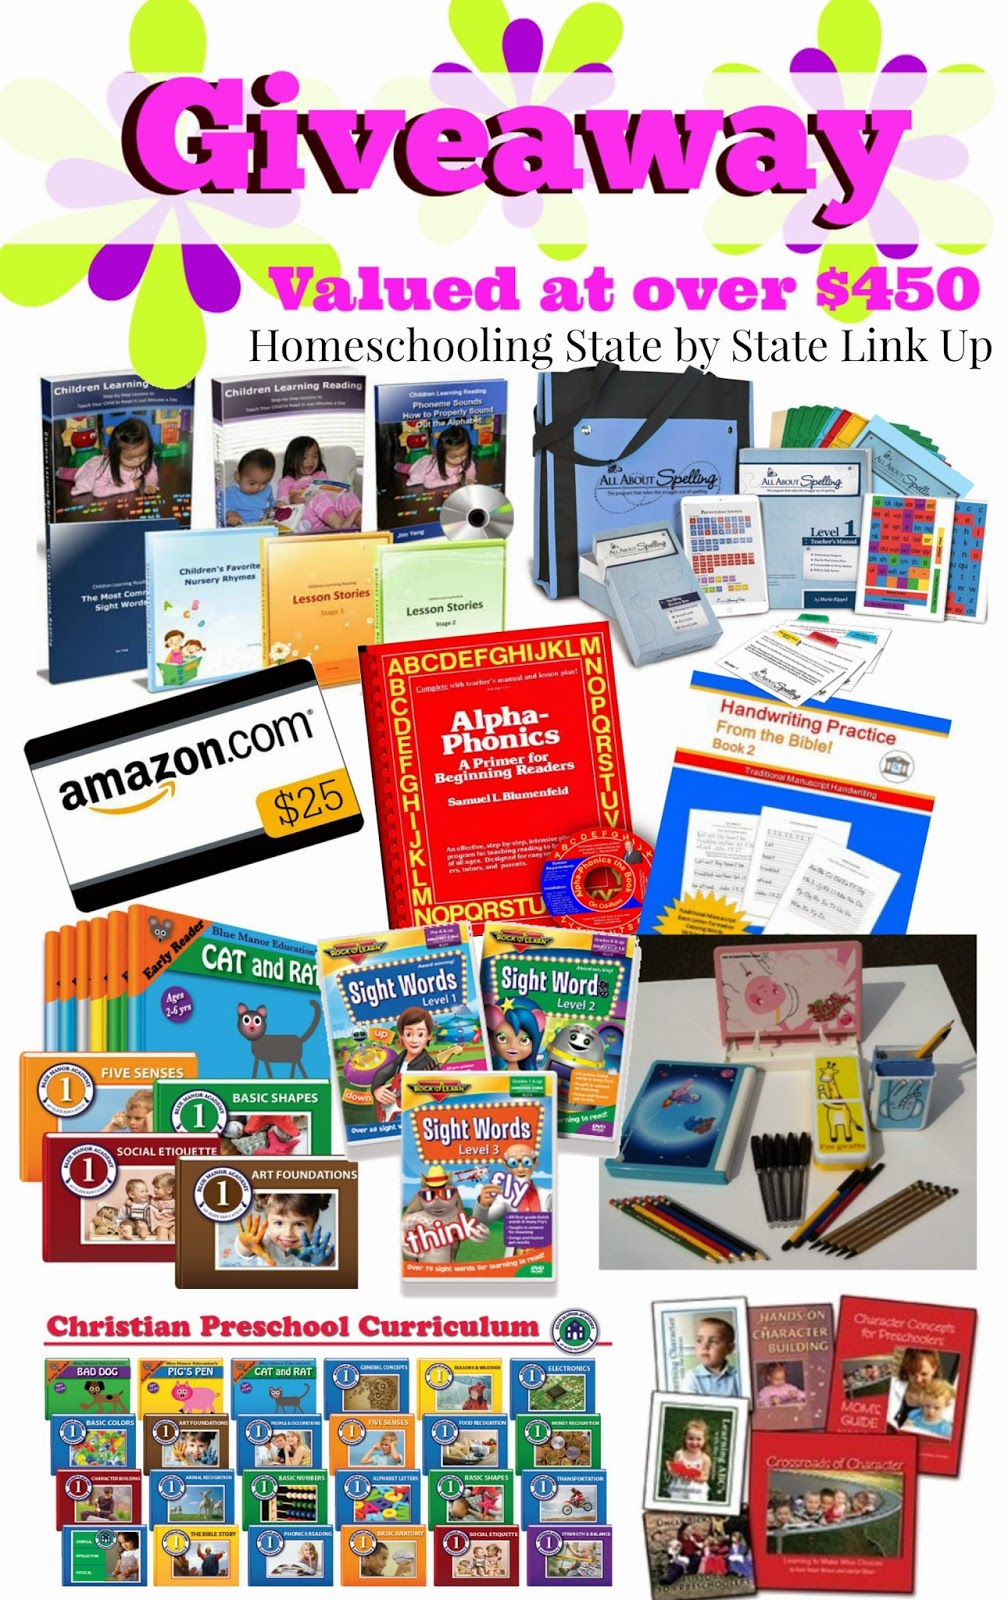 Homeschooling State by State Link Up